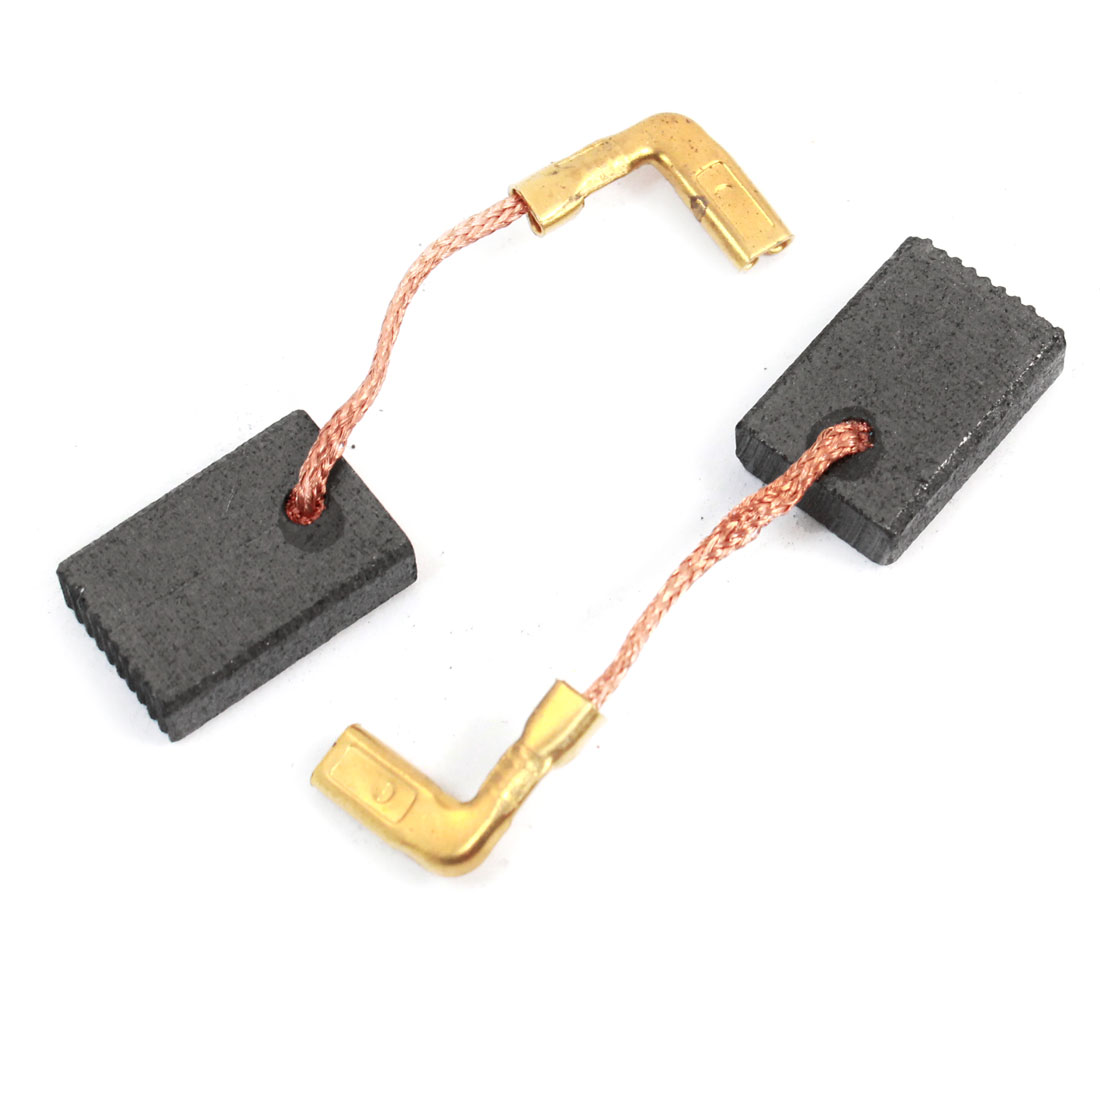 2 Pcs 16 x 11 x 5mm Carbon Brush for Bosch GBH11E Demolition Hammer